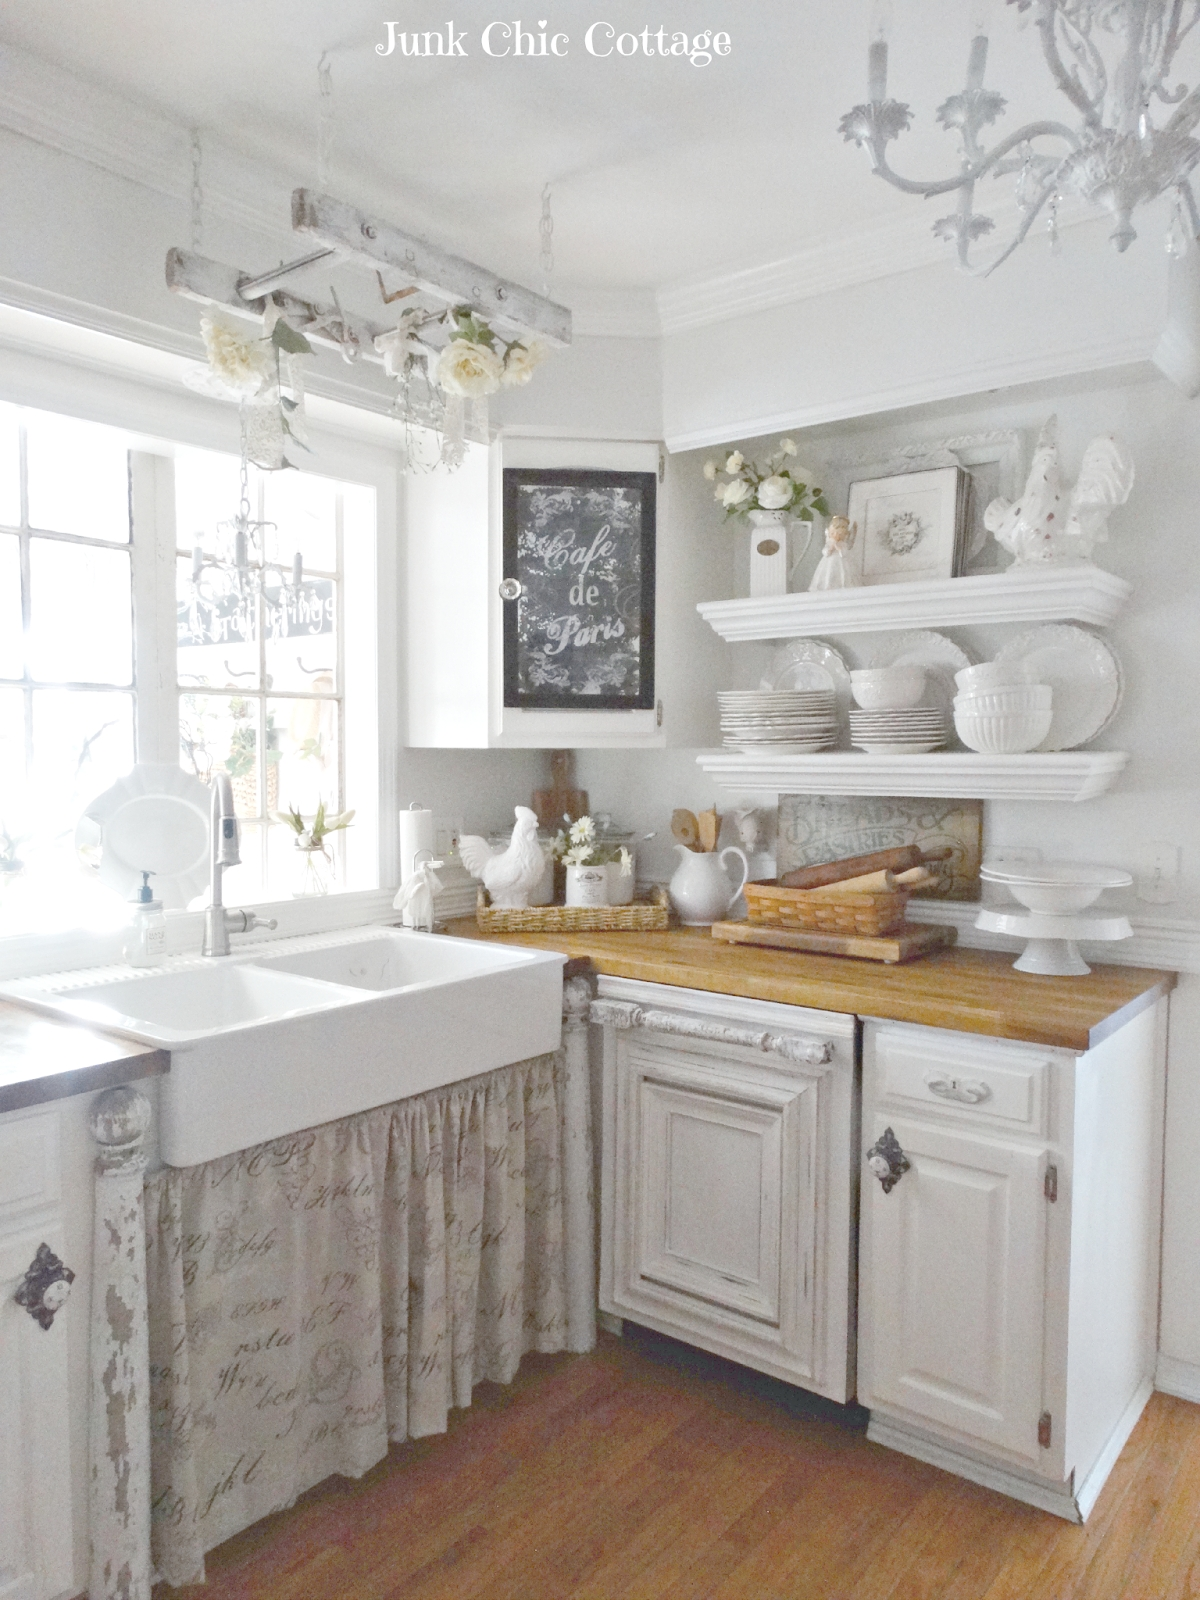 junk chic cottage face lift amazing dishwasher door makeover